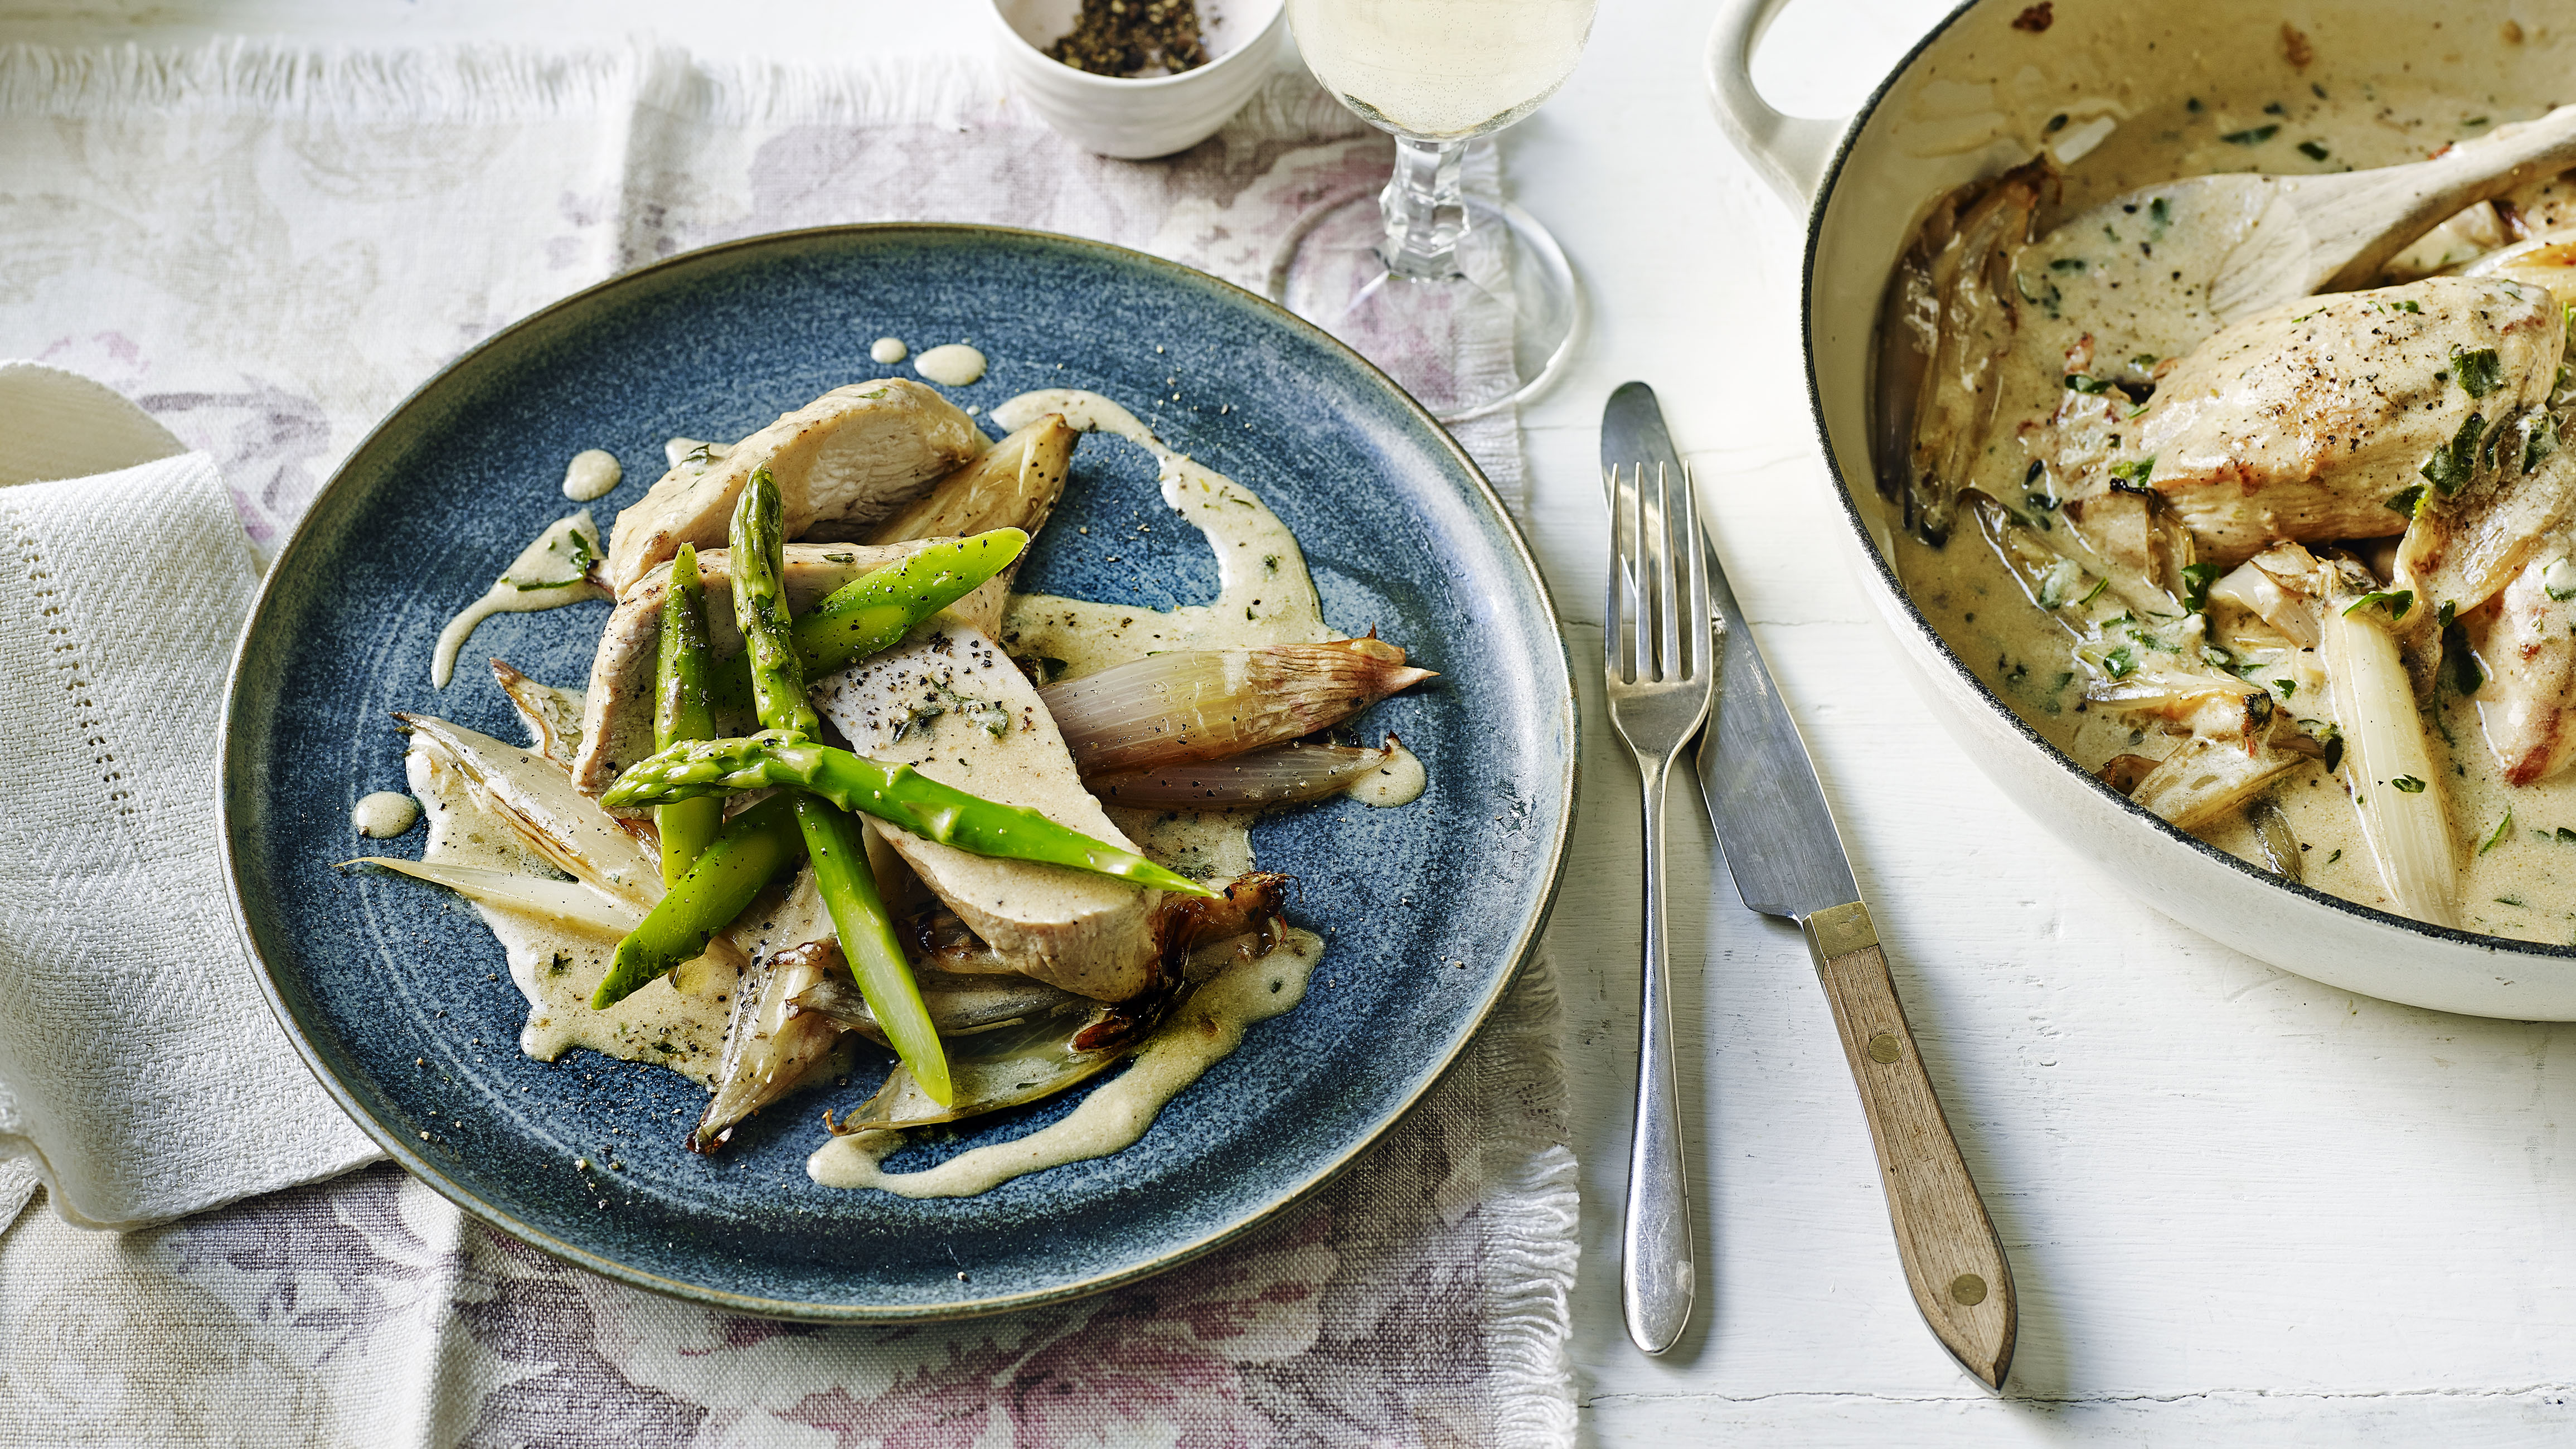 Chicken with asparagus and lemon crme frache sauce recipe bbc food forumfinder Images